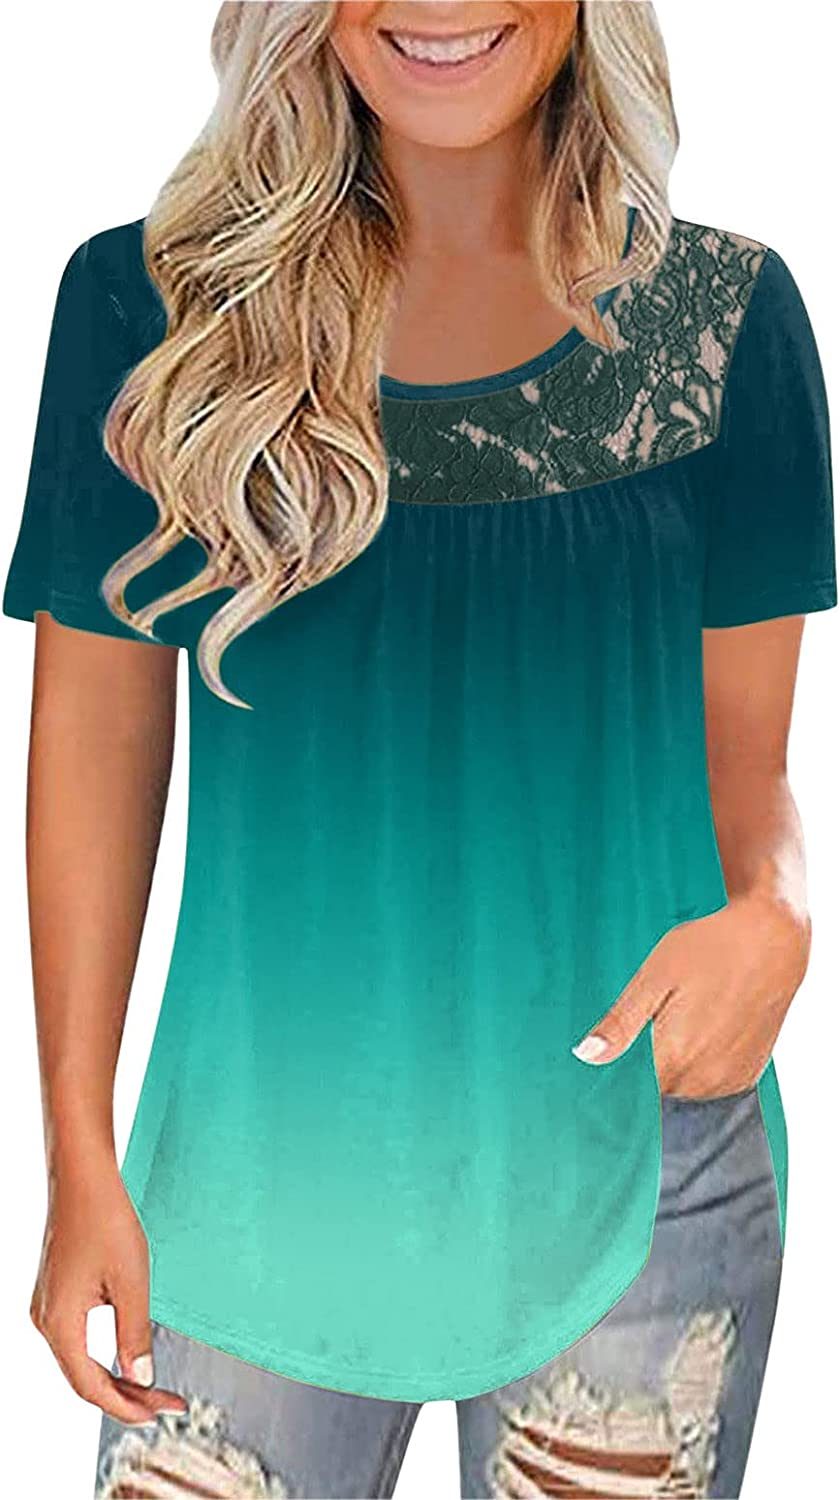 Women Casual Loose Fit Long Sleeve Shirts Tunic Comfy Ploral Printed Tops Tee Shirt Pullovers